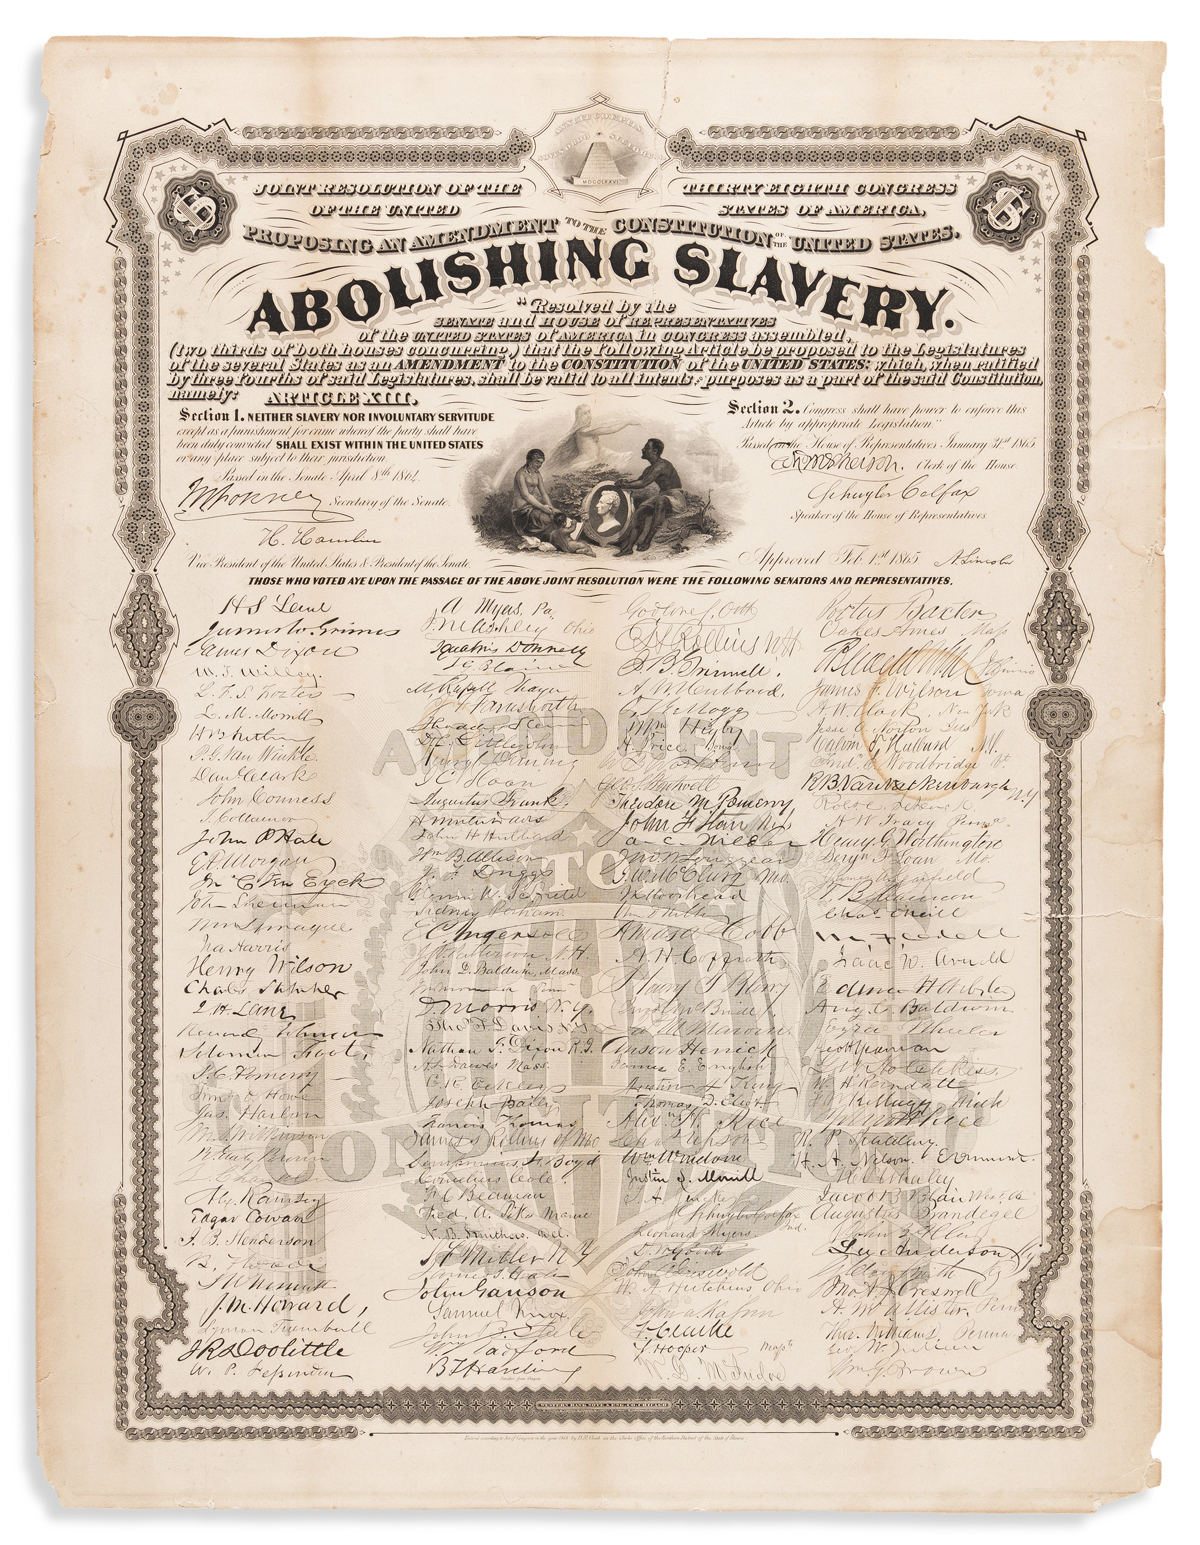 (SLAVERY AND ABOLITION.) Joint Resolution . . . Proposing an Amendment to the Constitution . . . Abolishing Slavery.